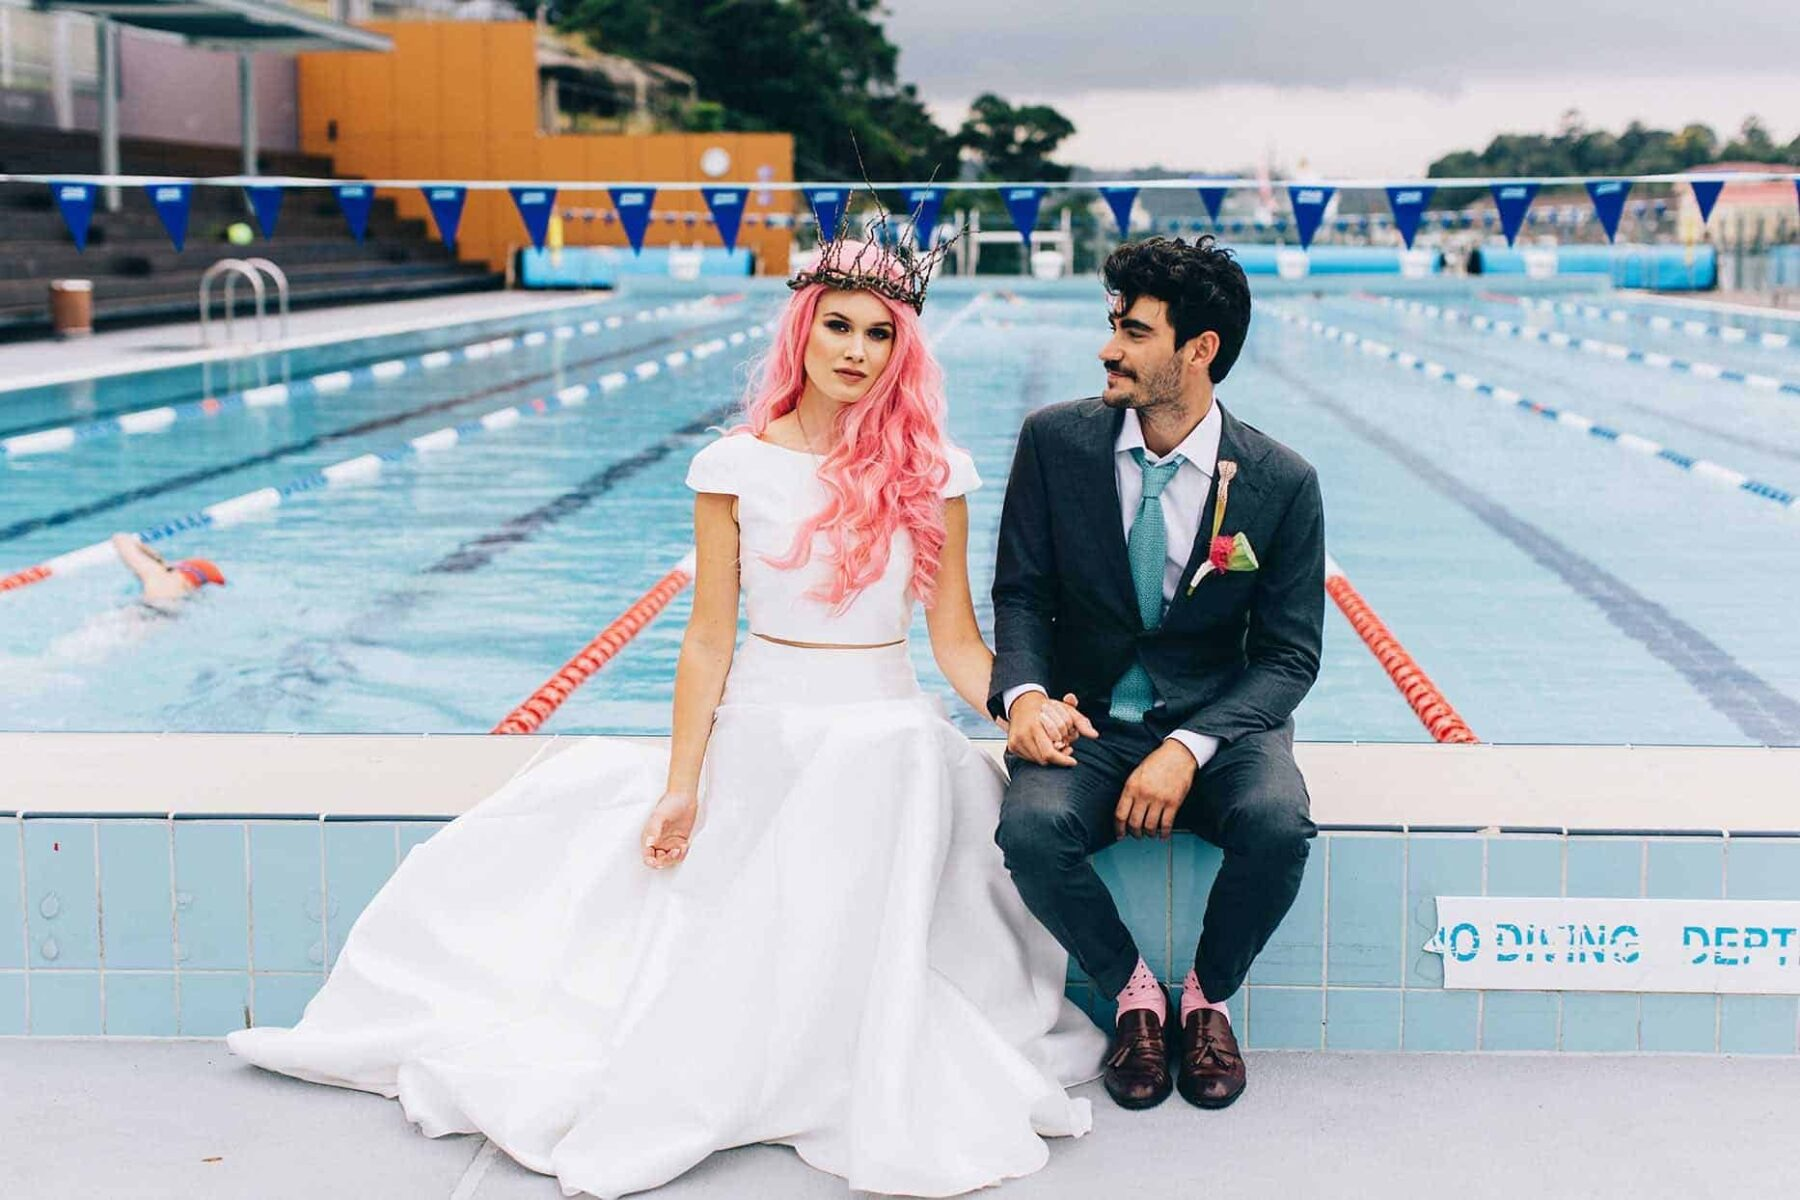 Sydney swimming pool wedding shoot - At Dusk Photography